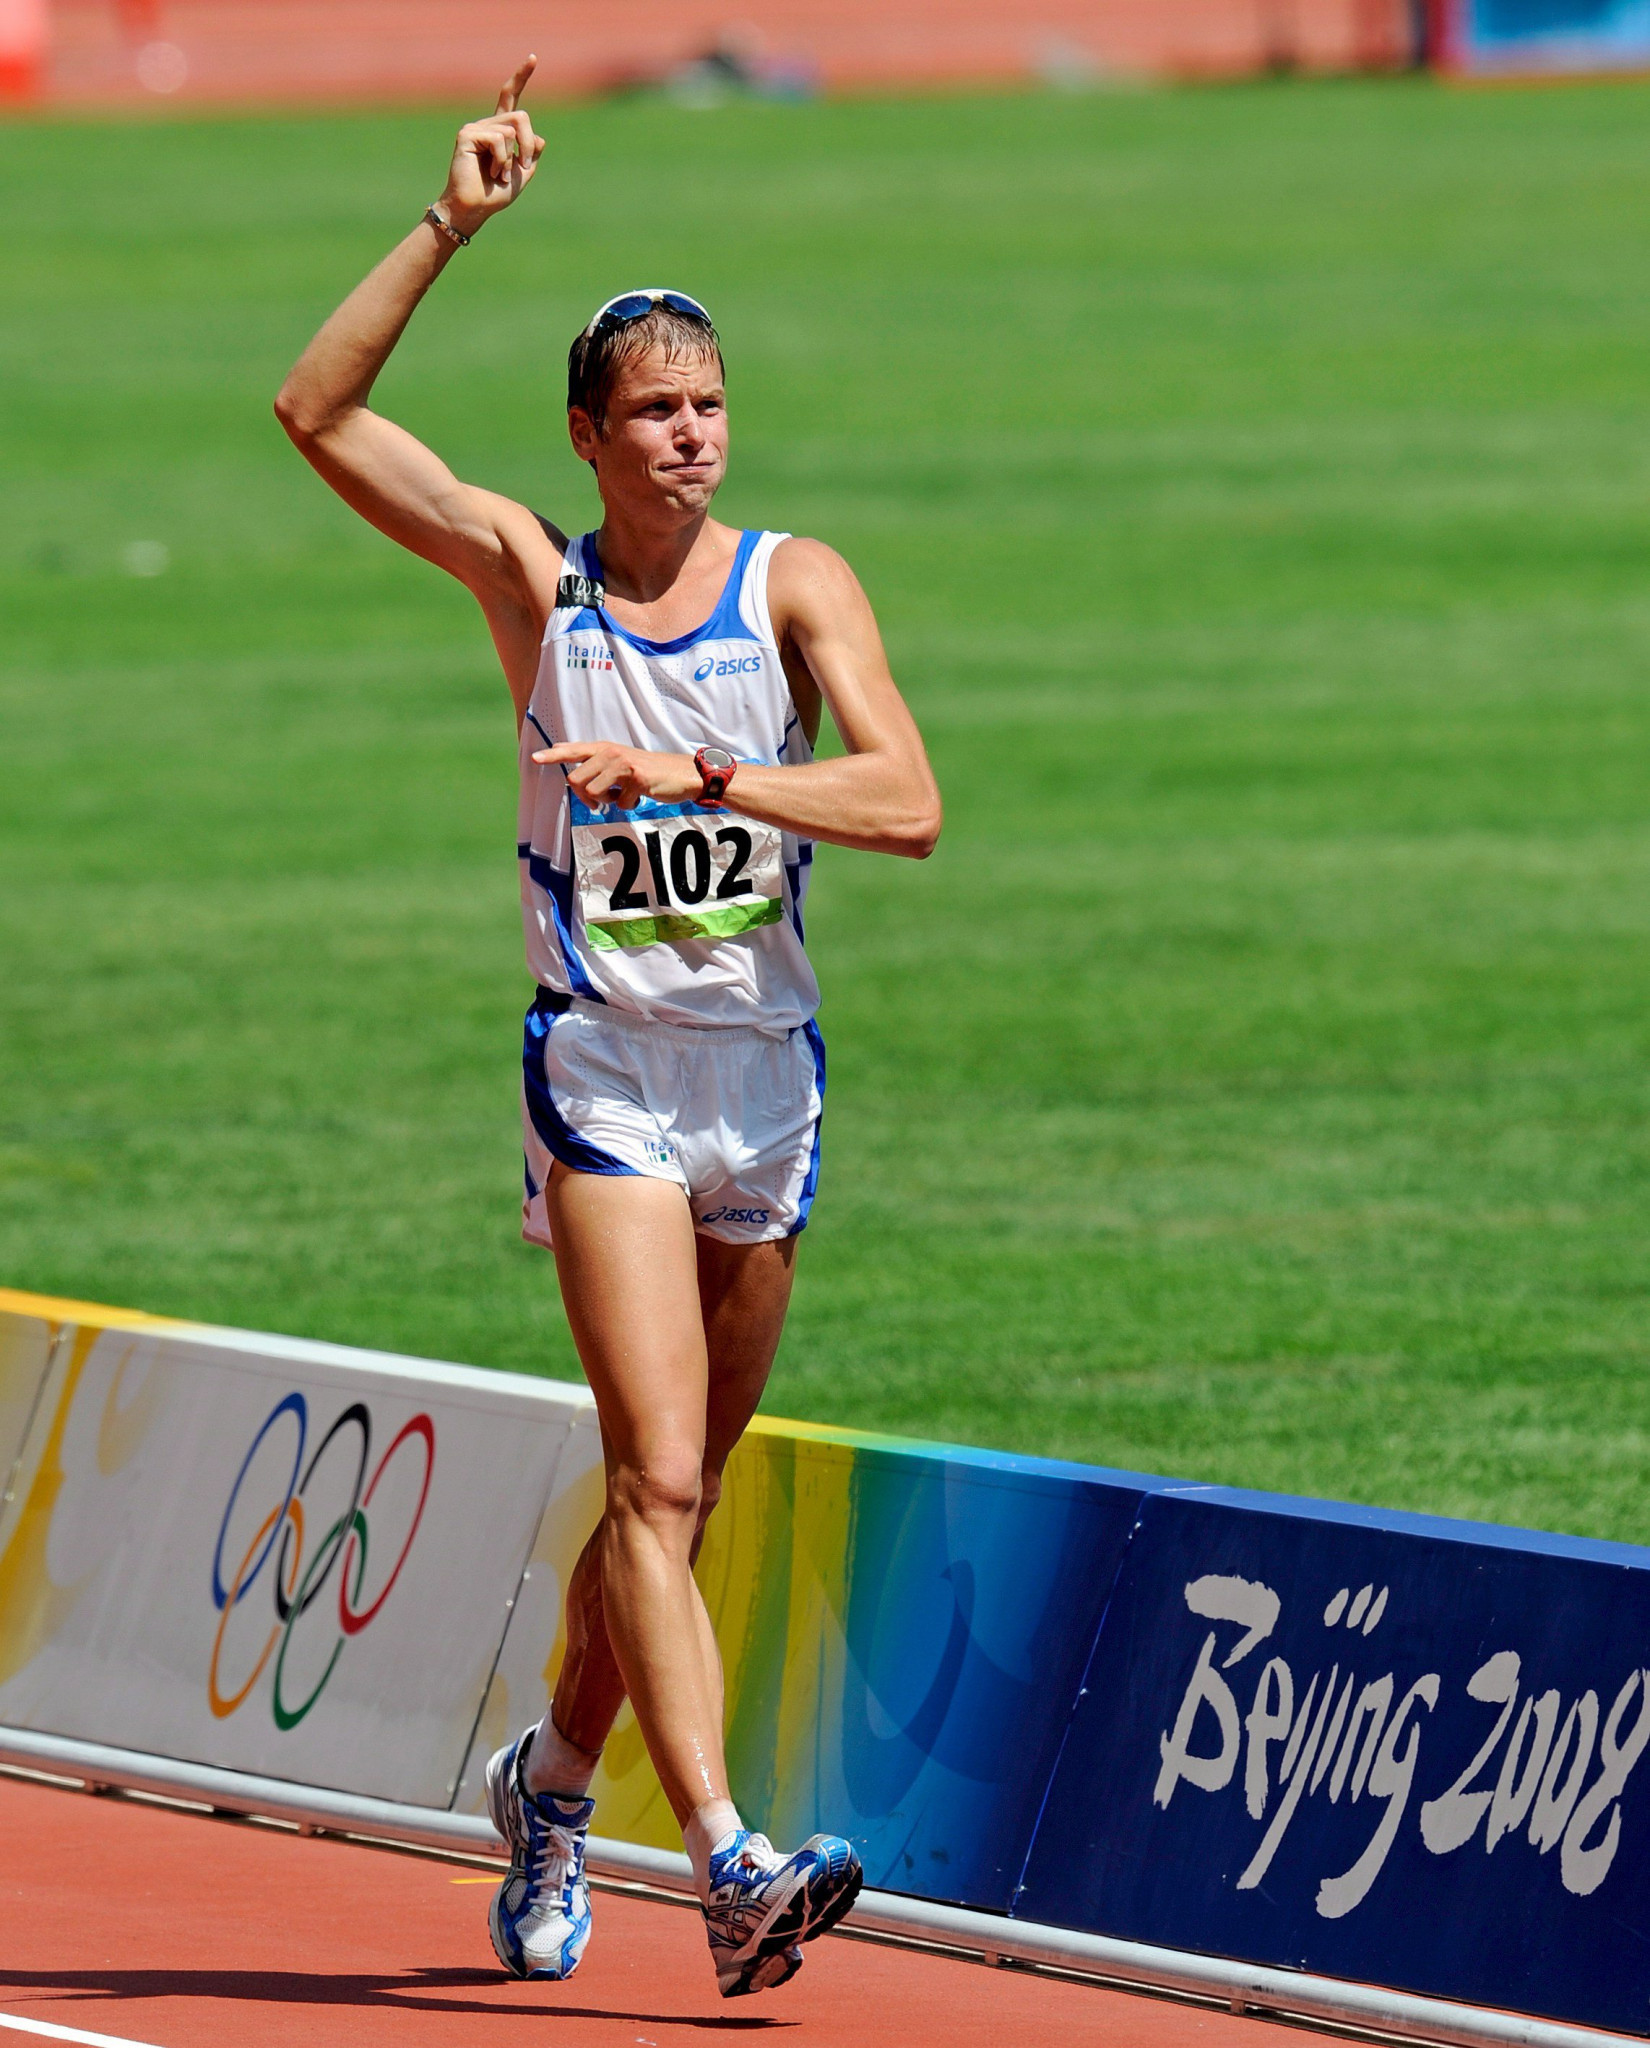 Alex Schwazer won the Olympic gold medal in the 50km race walk at Beijing 2008 but tested positive for banned performance-enhancing drugs on the eve of London 2012 ©Getty Images